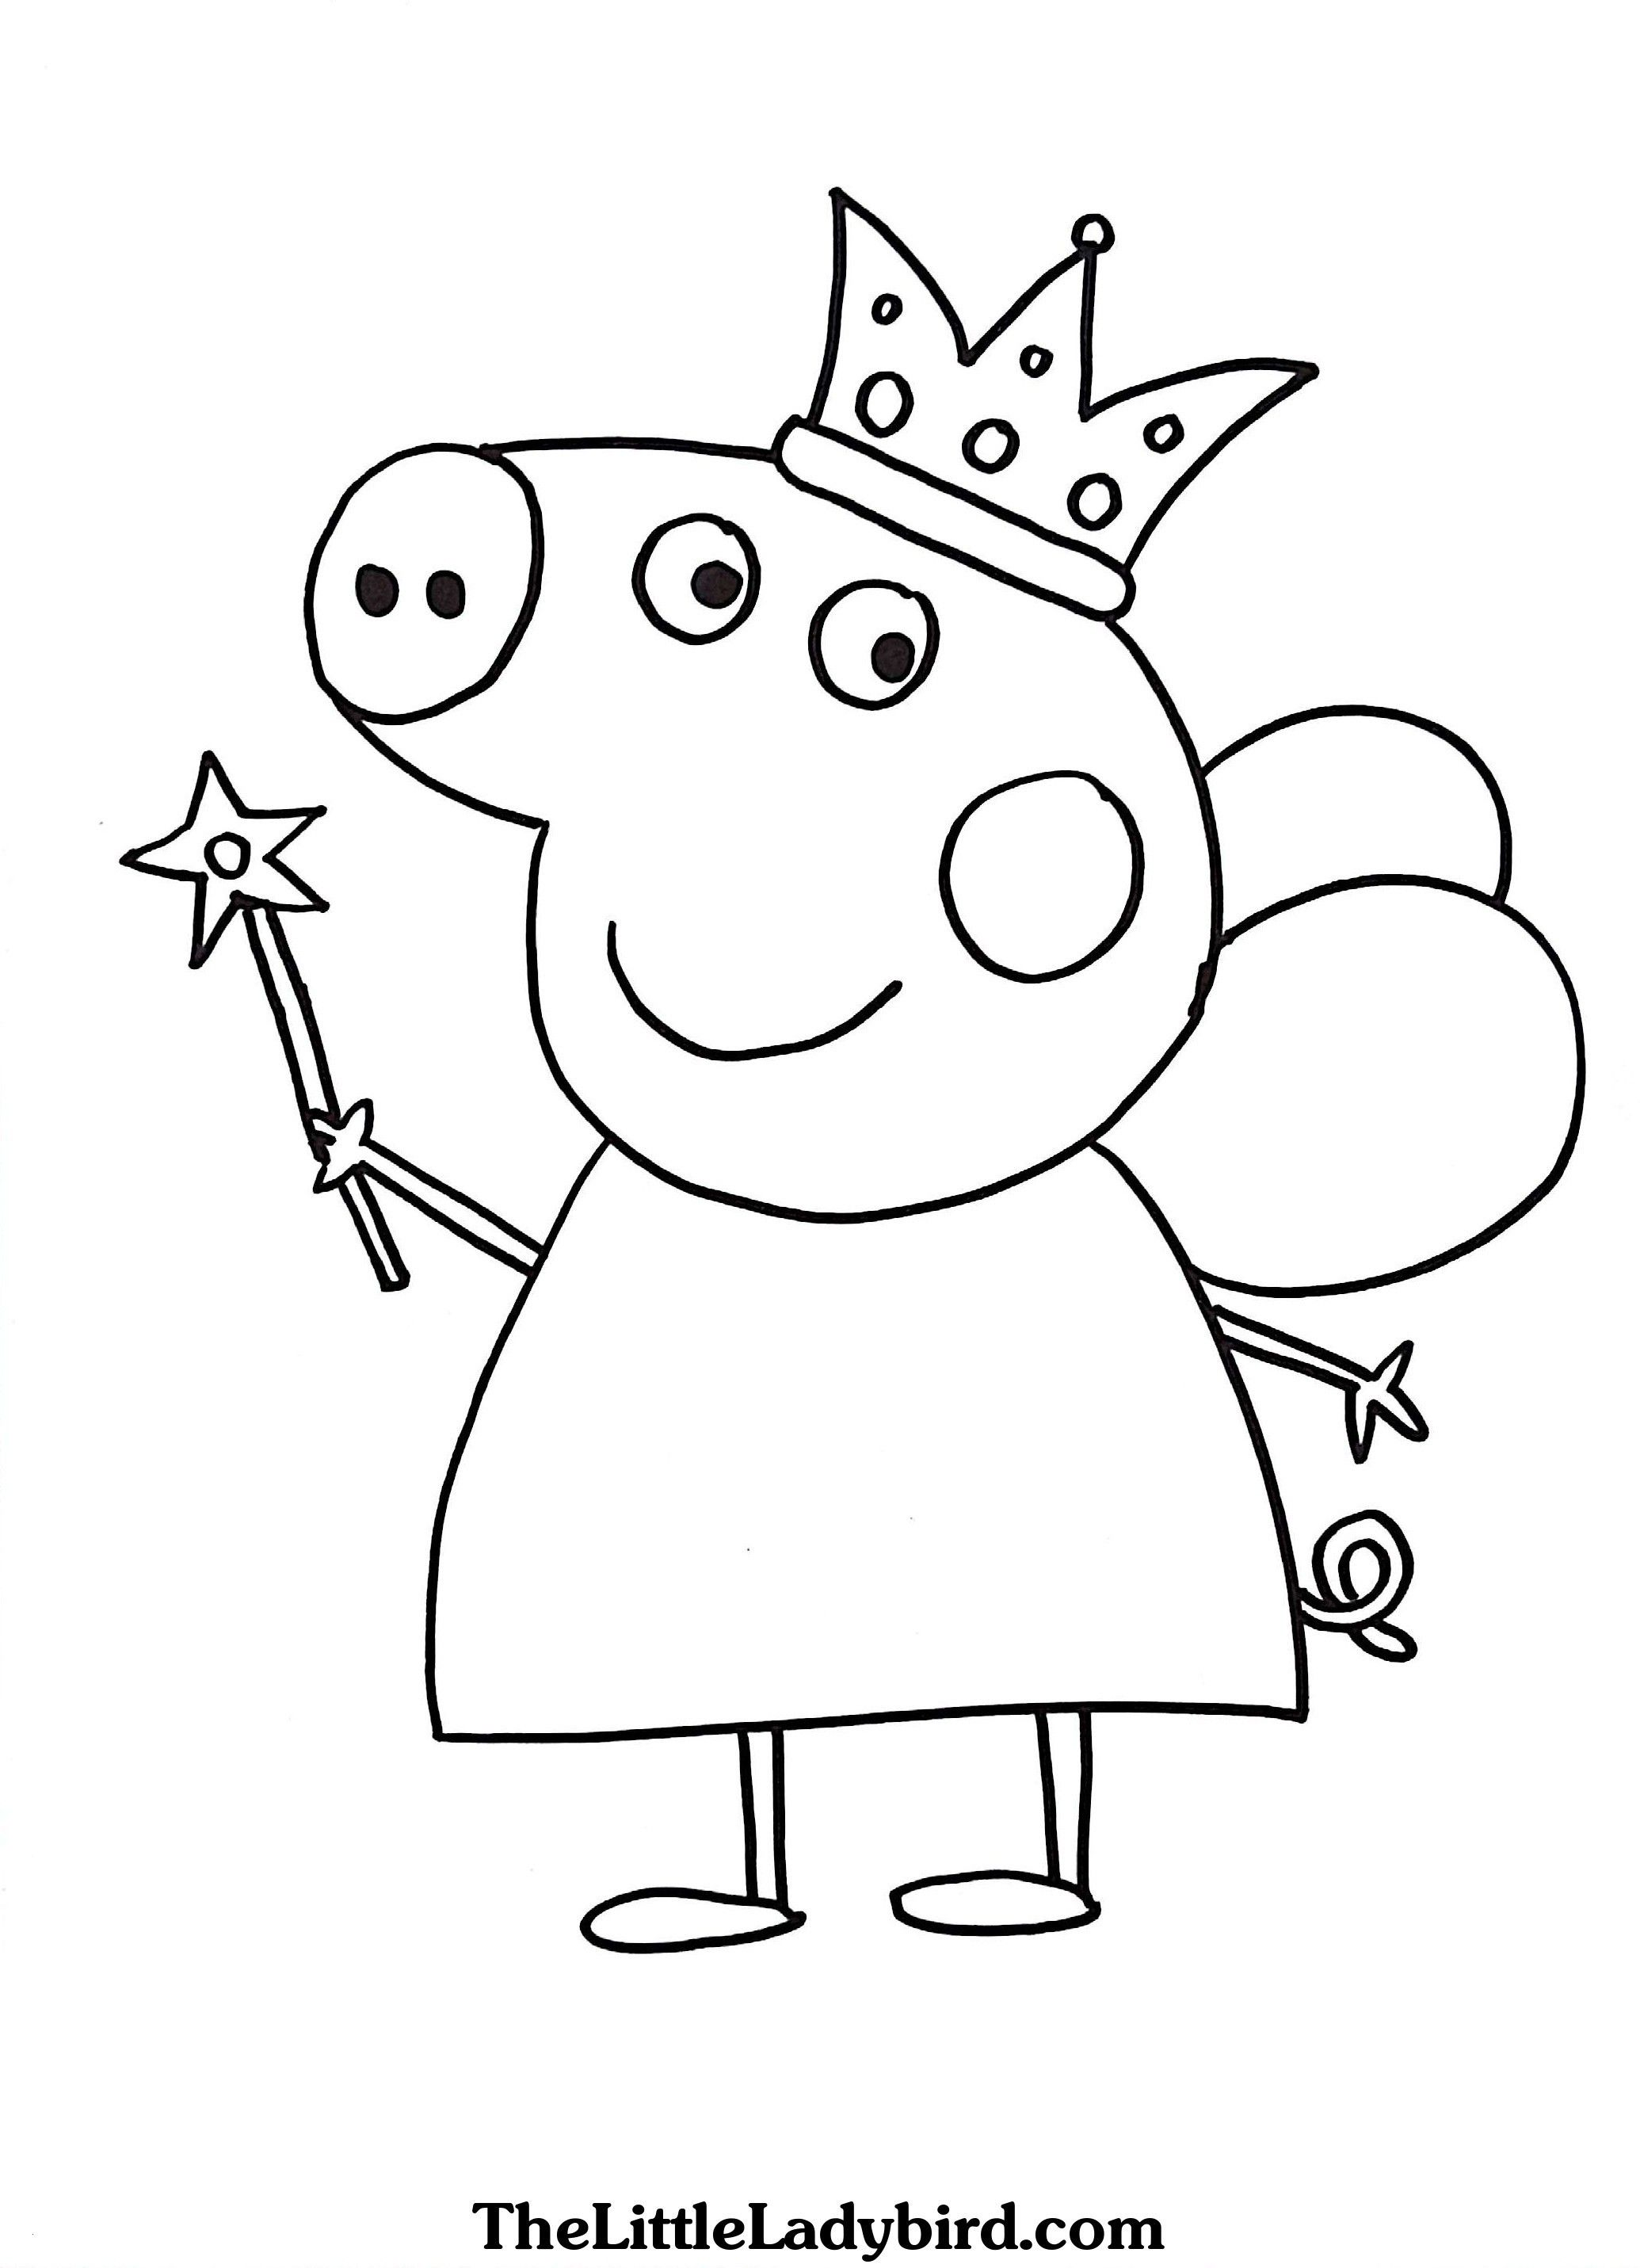 Peppa Pig Valentines Coloring Pages Bubakids Com In 2020 Peppa Pig Coloring Pages Peppa Pig Colouring Birthday Coloring Pages